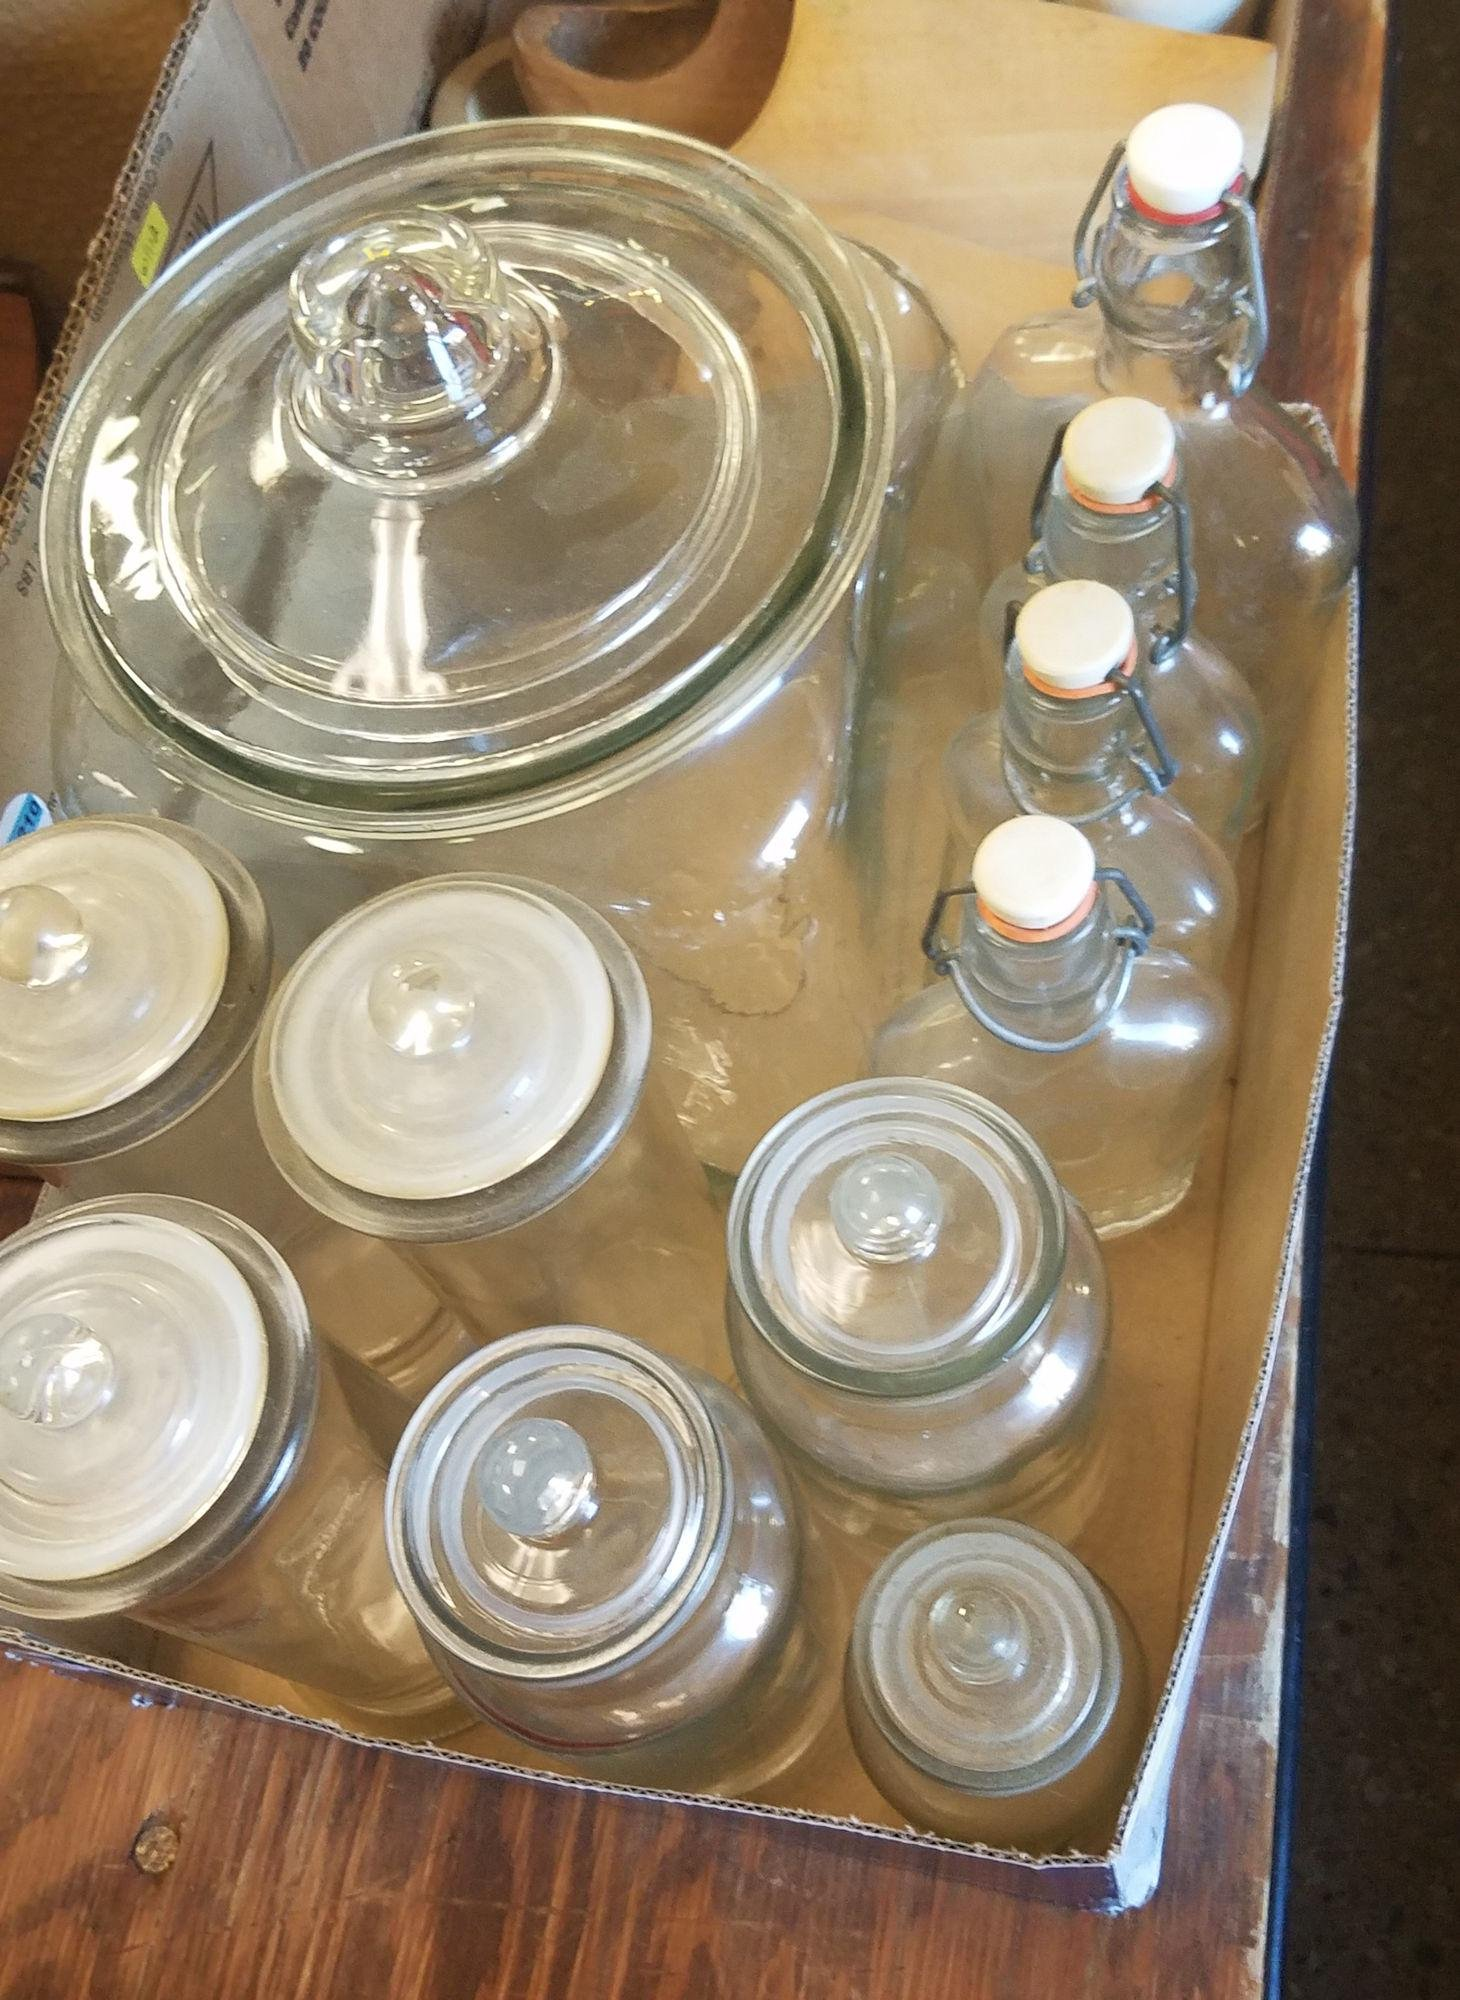 2 BOX LOTS CLEAR GLASS CANISTERS, CORKED BOTTLES,